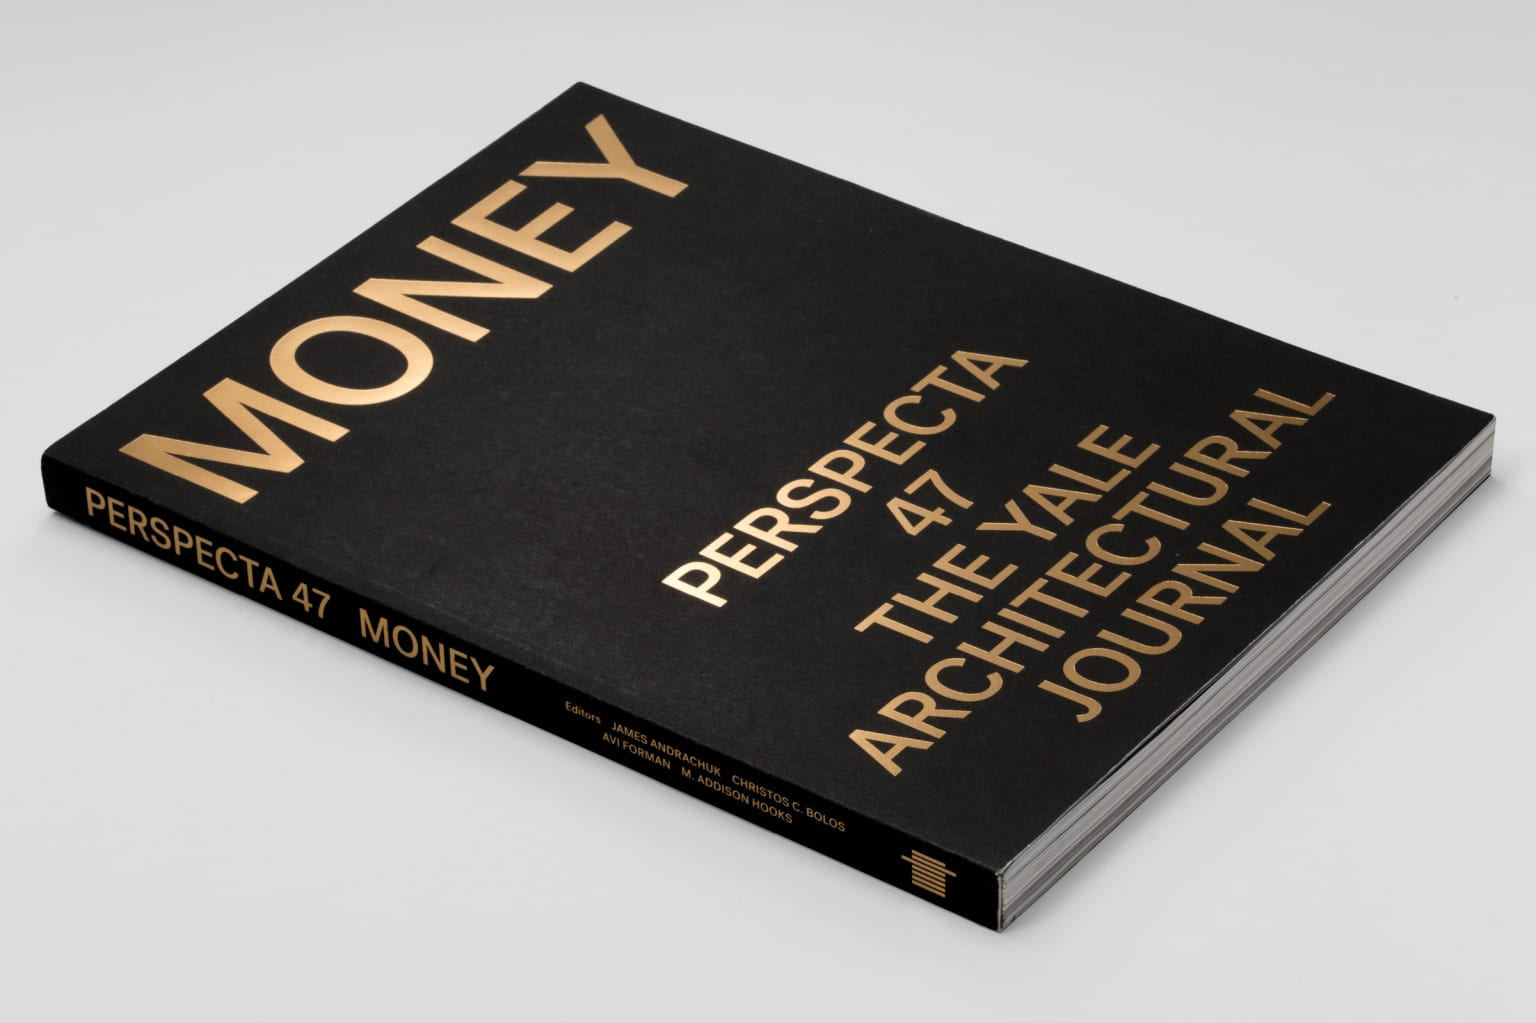 Perspecta: Money